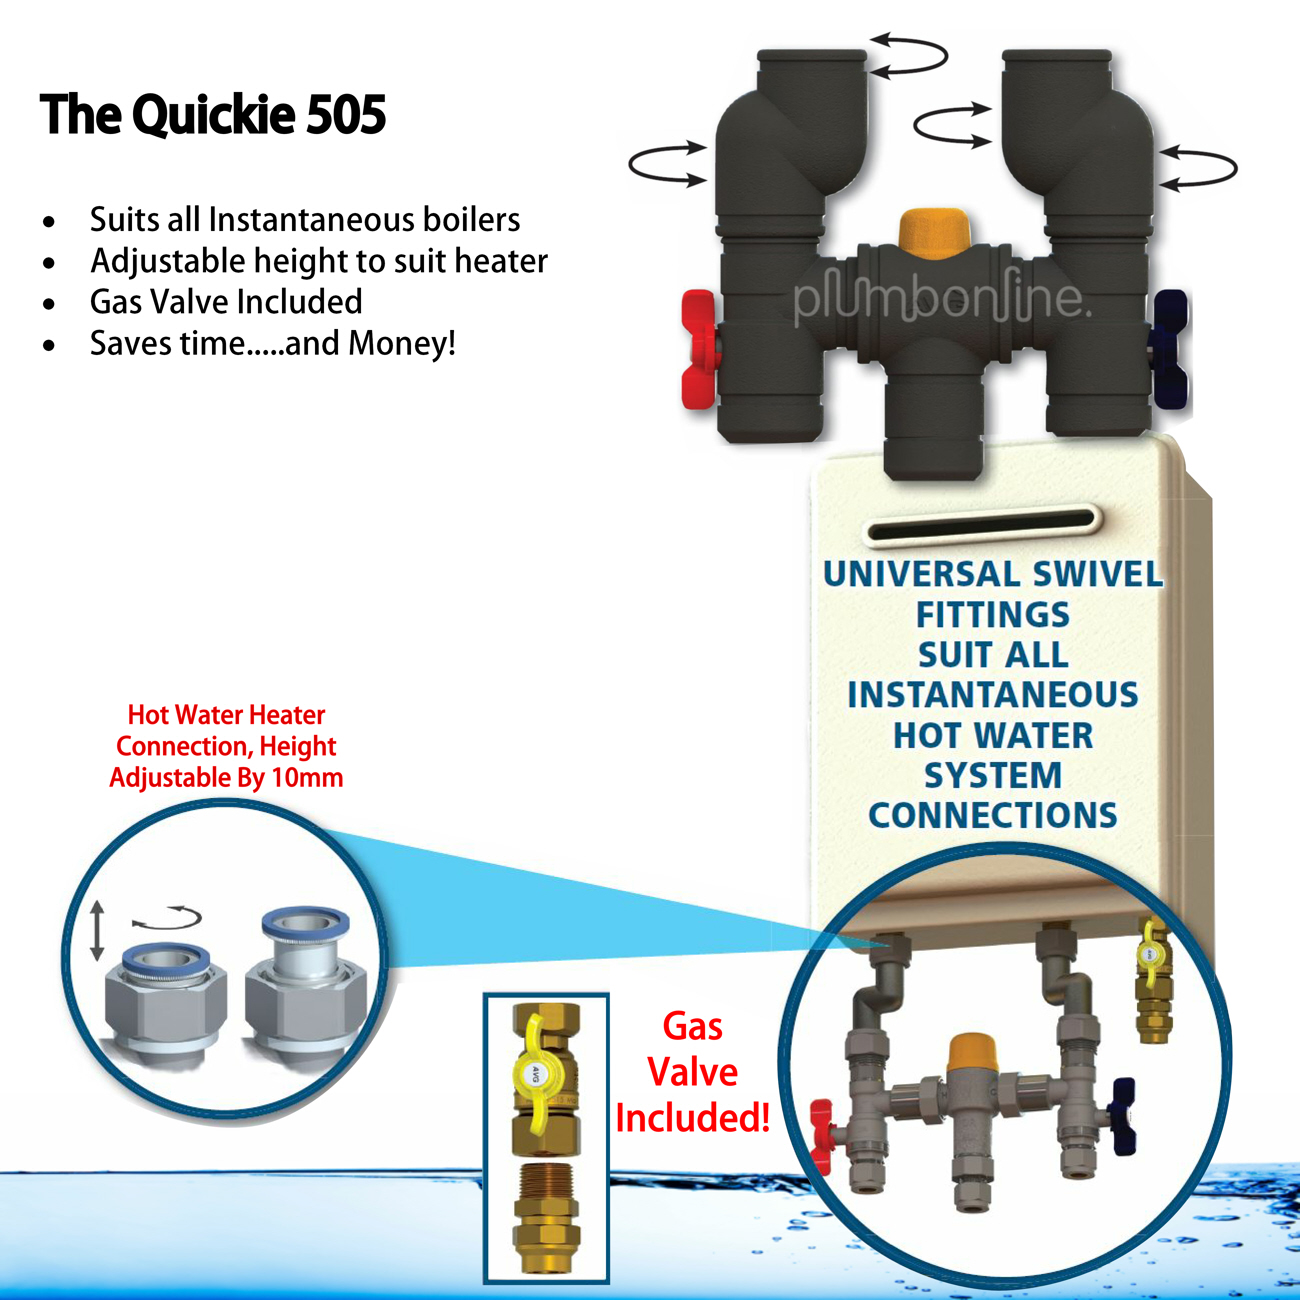 qik505-gas-continuous-flow-install-kit-with-burner-v1.2.jpg